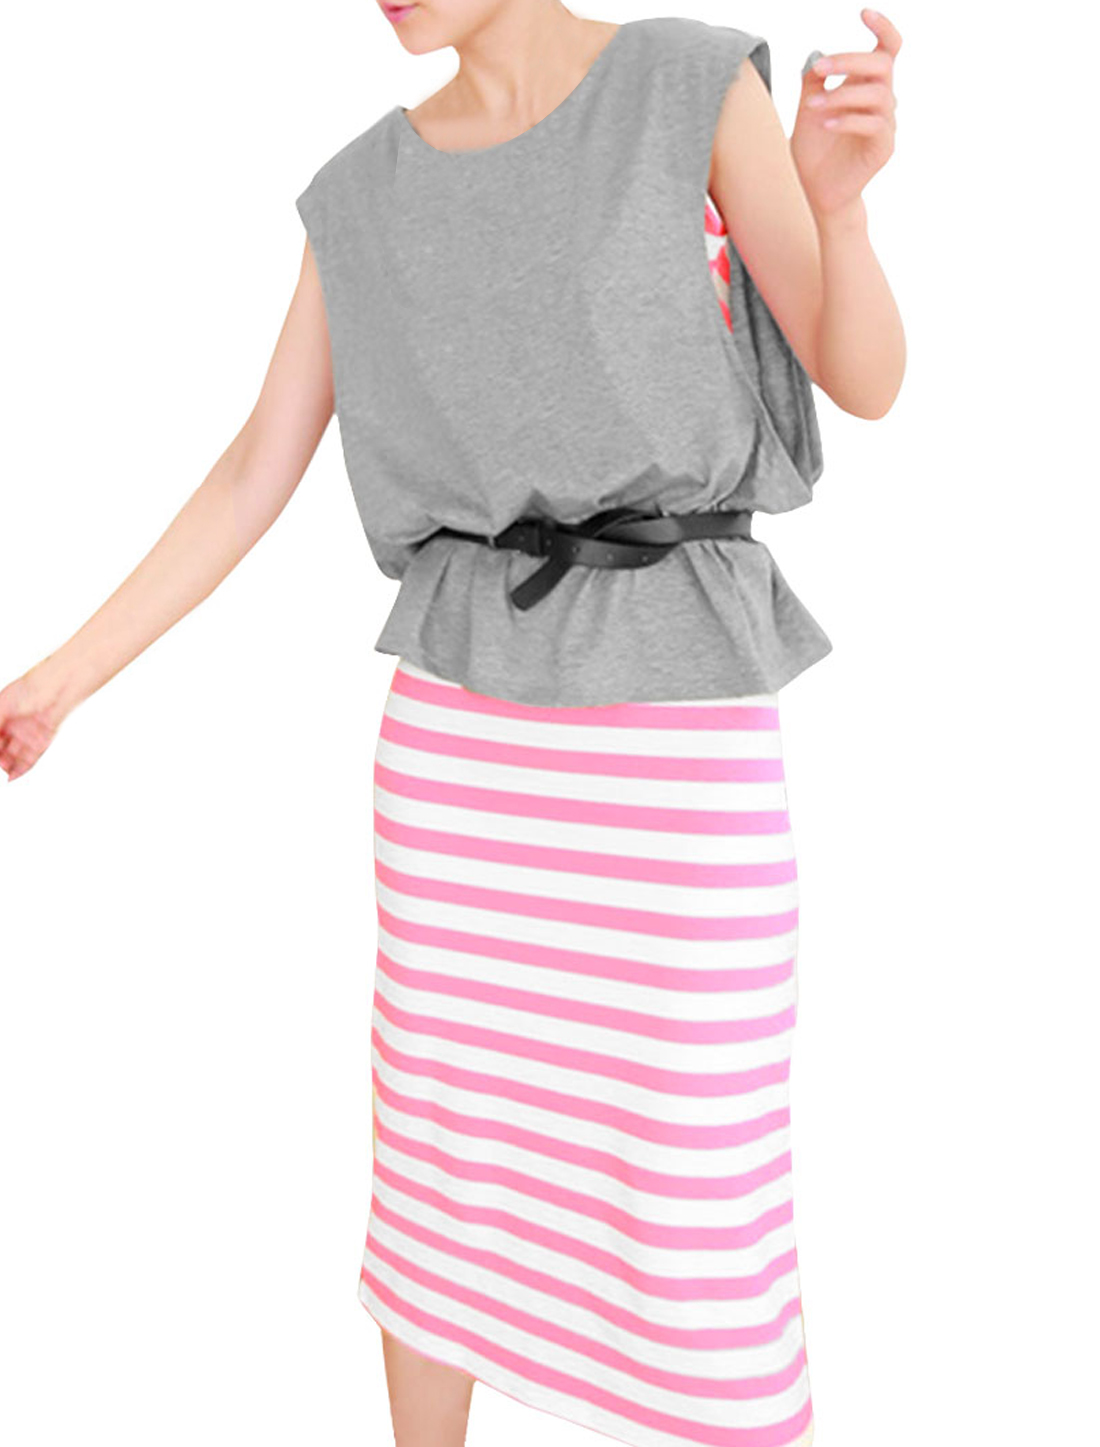 Ladies Sleeveless Loop Blouse w Stripes Pattern Decor Heather Gray Pink Dress XS